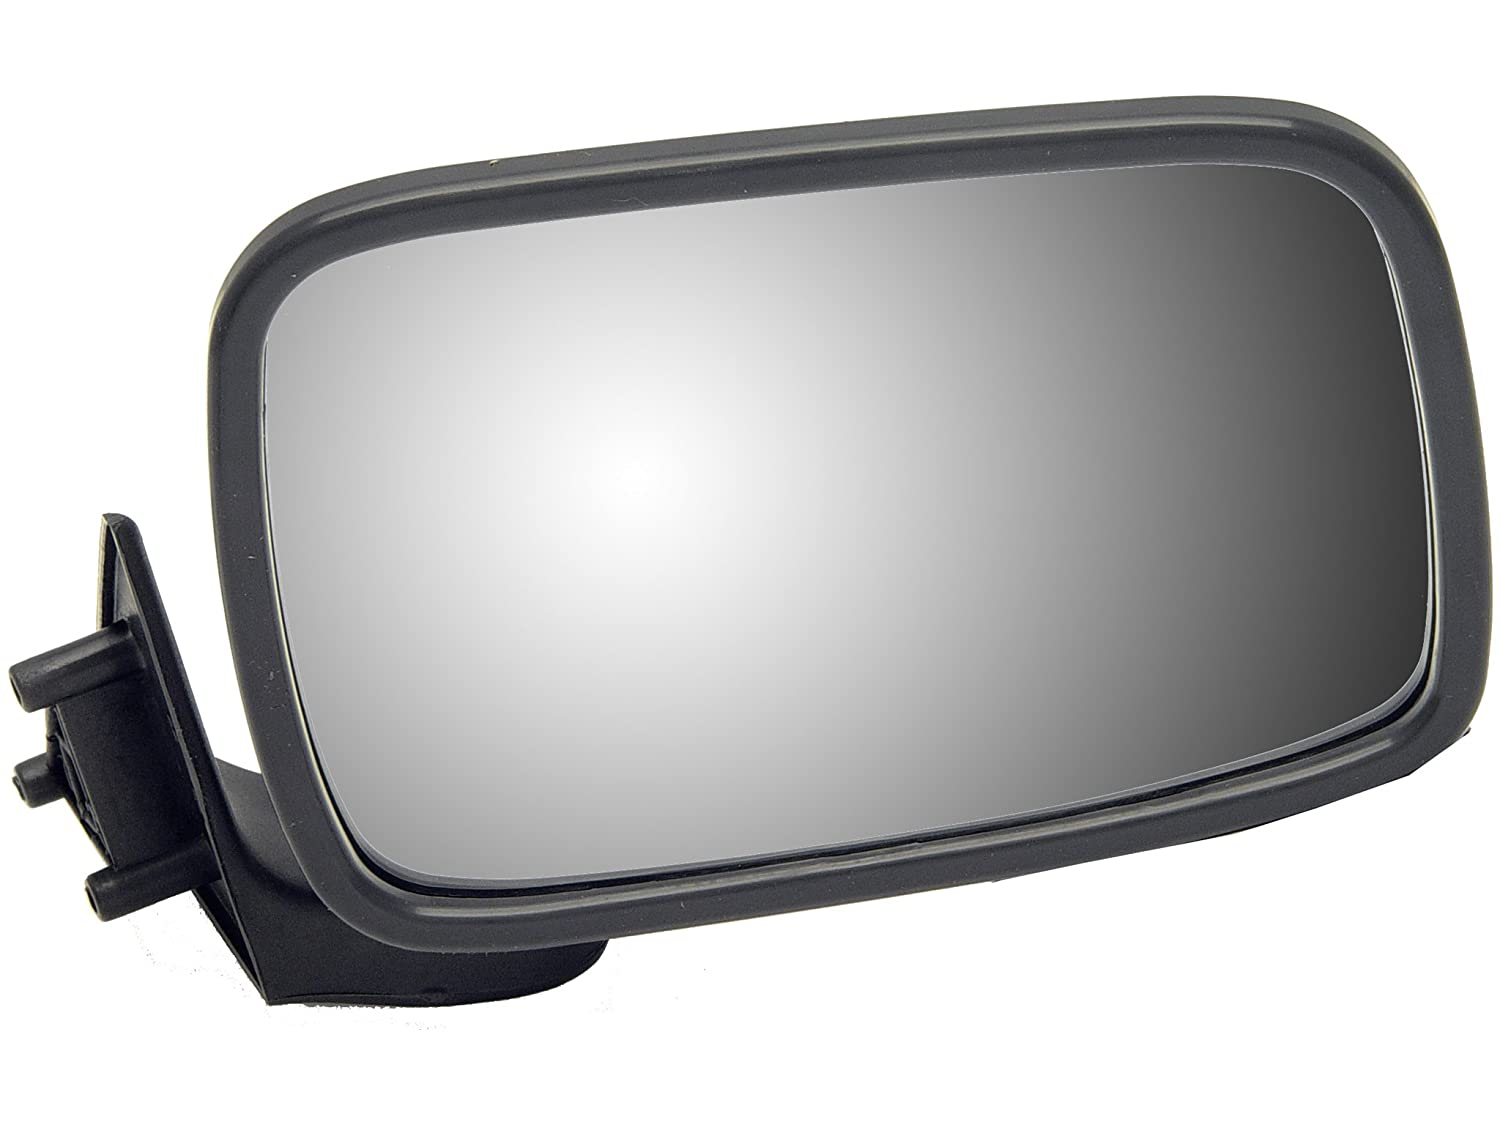 Dorman 955-1528 Nissan Pathfinder Driver Side Manual Heated Replacement Side View Mirror